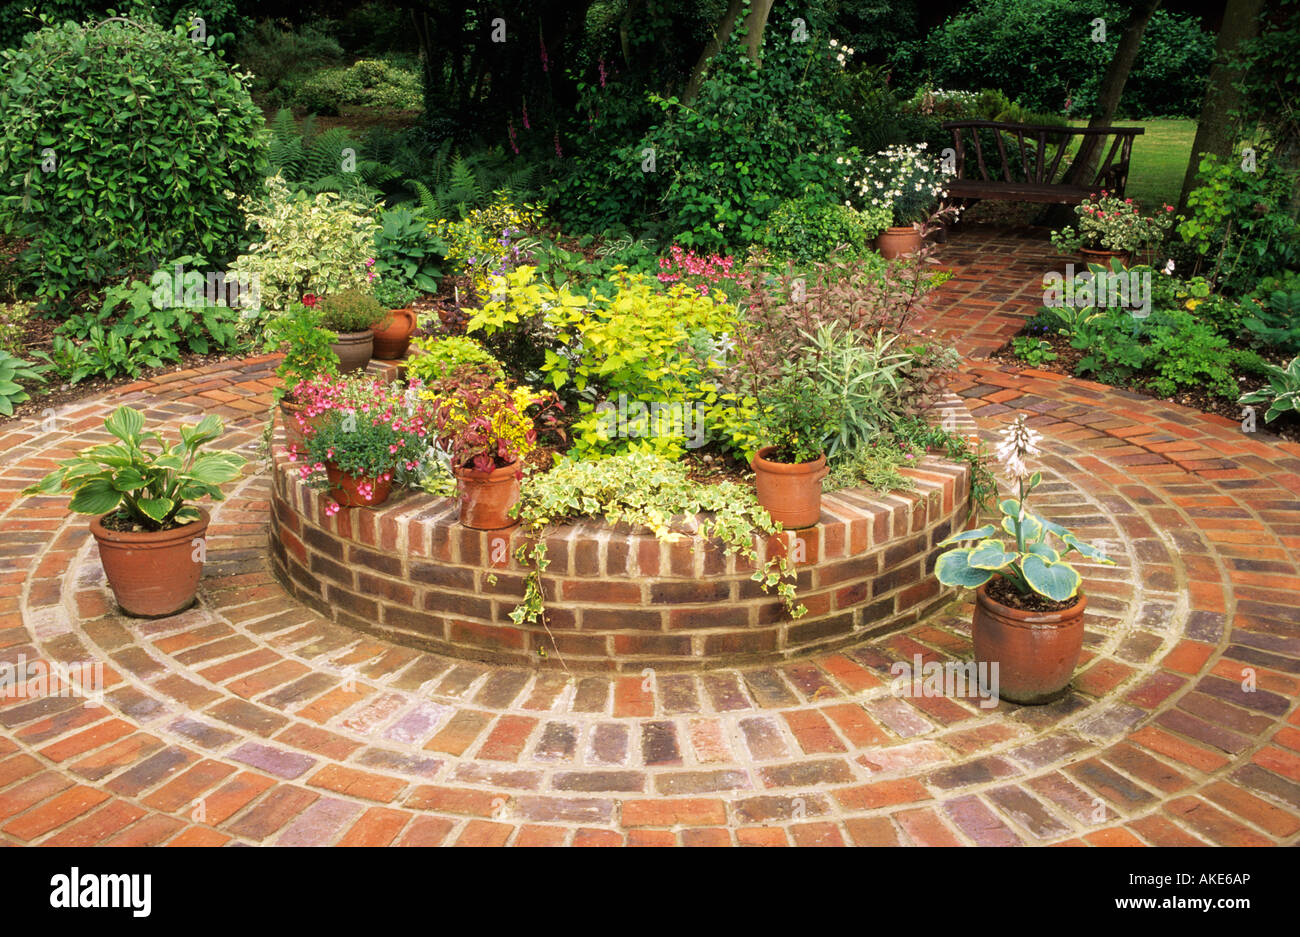 Stock Photo   Raised Circular Brick Seating And Pot Display Area In Patio  With Containers